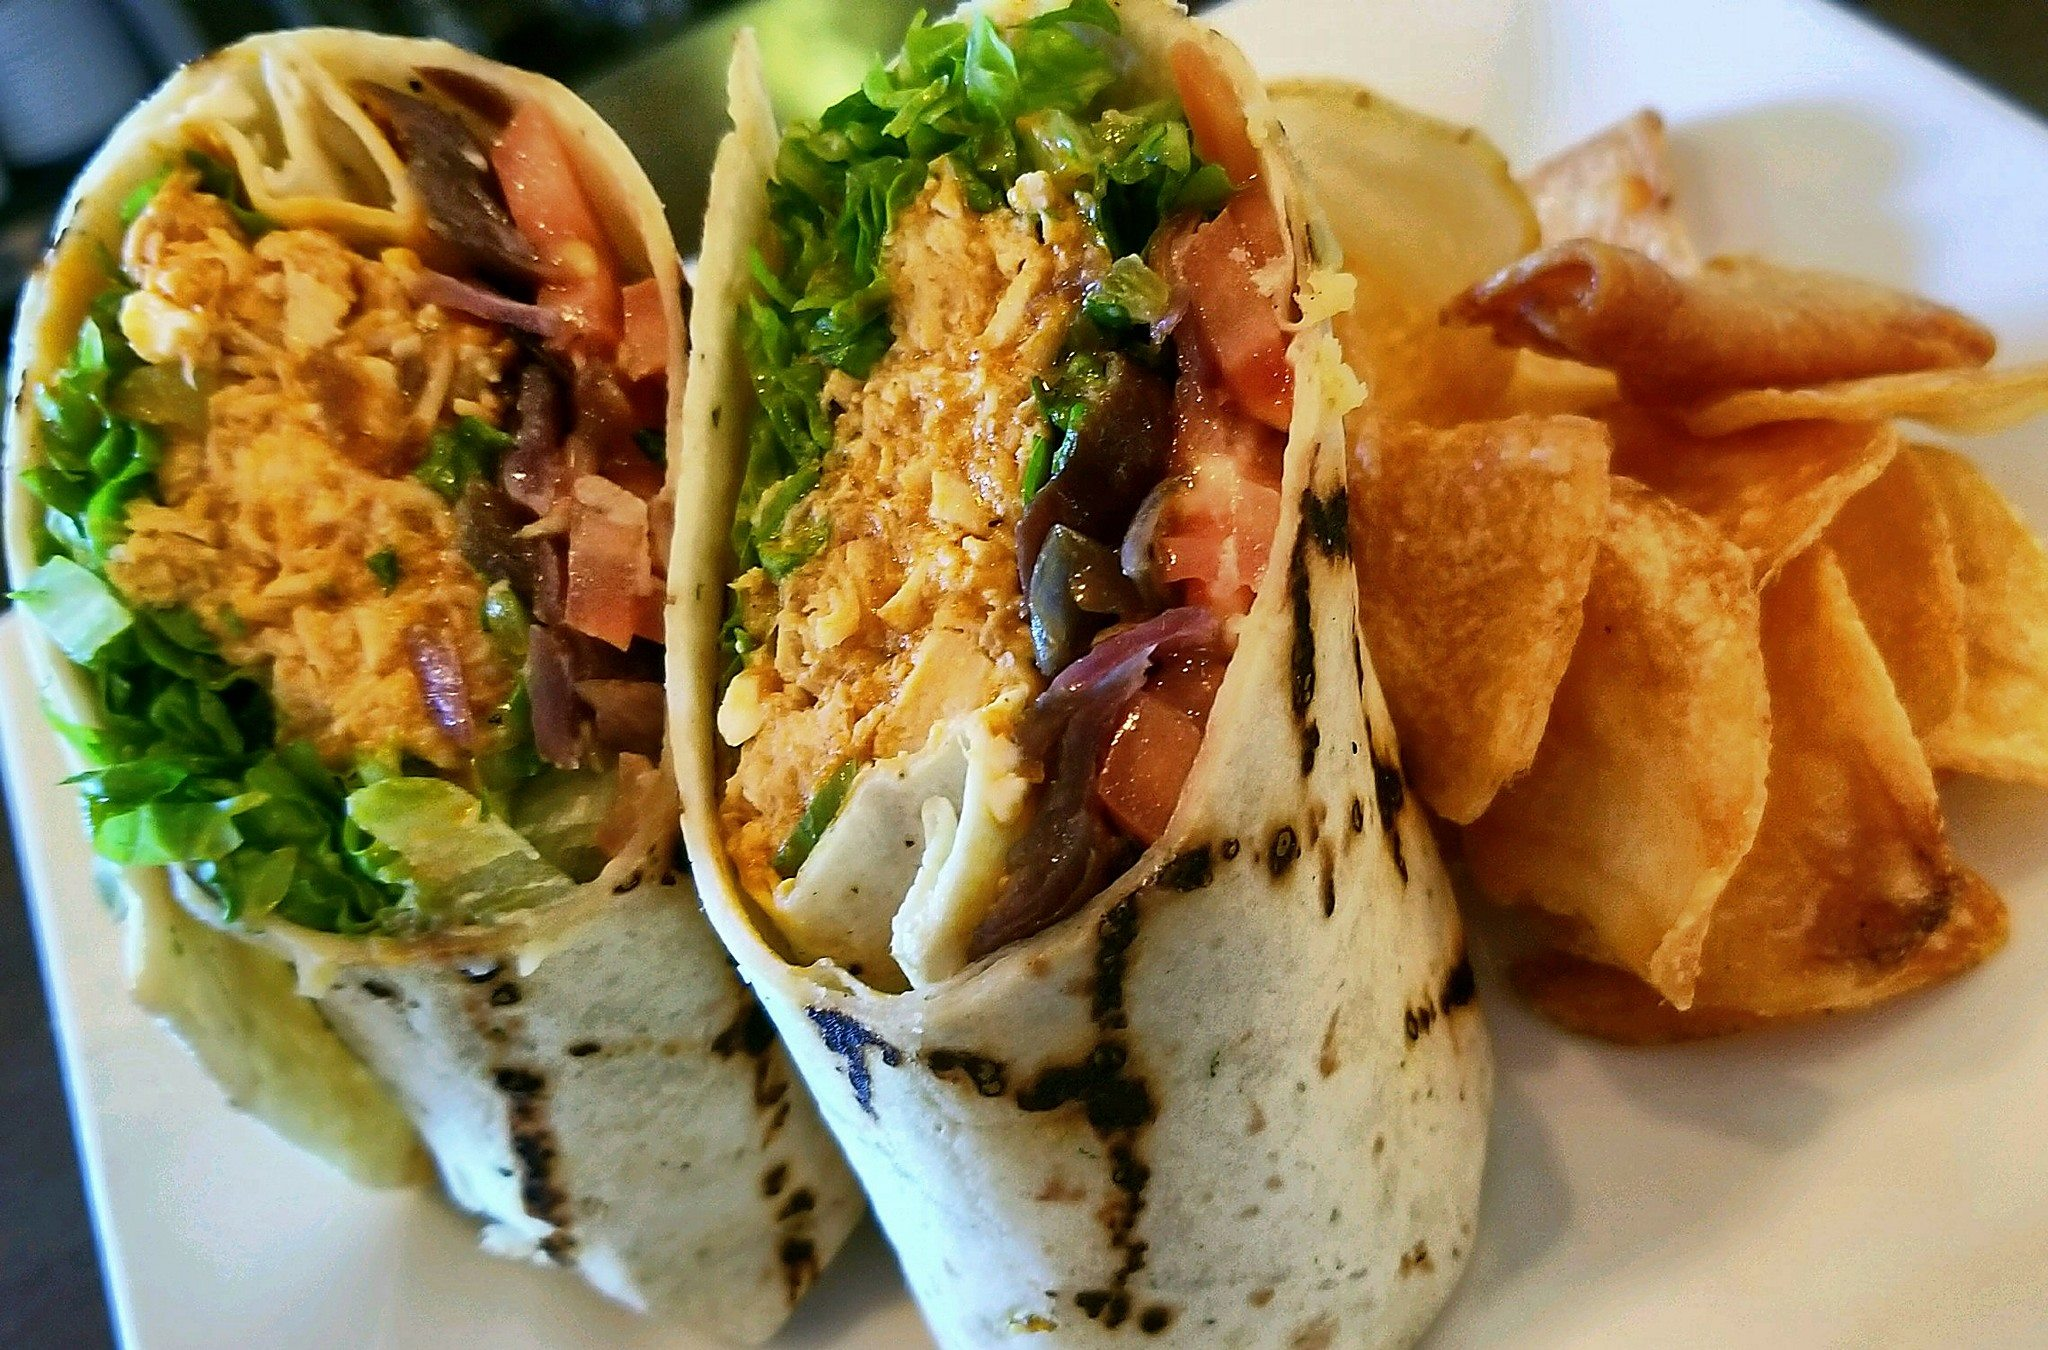 chicken wrap with beans, lettuce and tomatoes with a side of fries